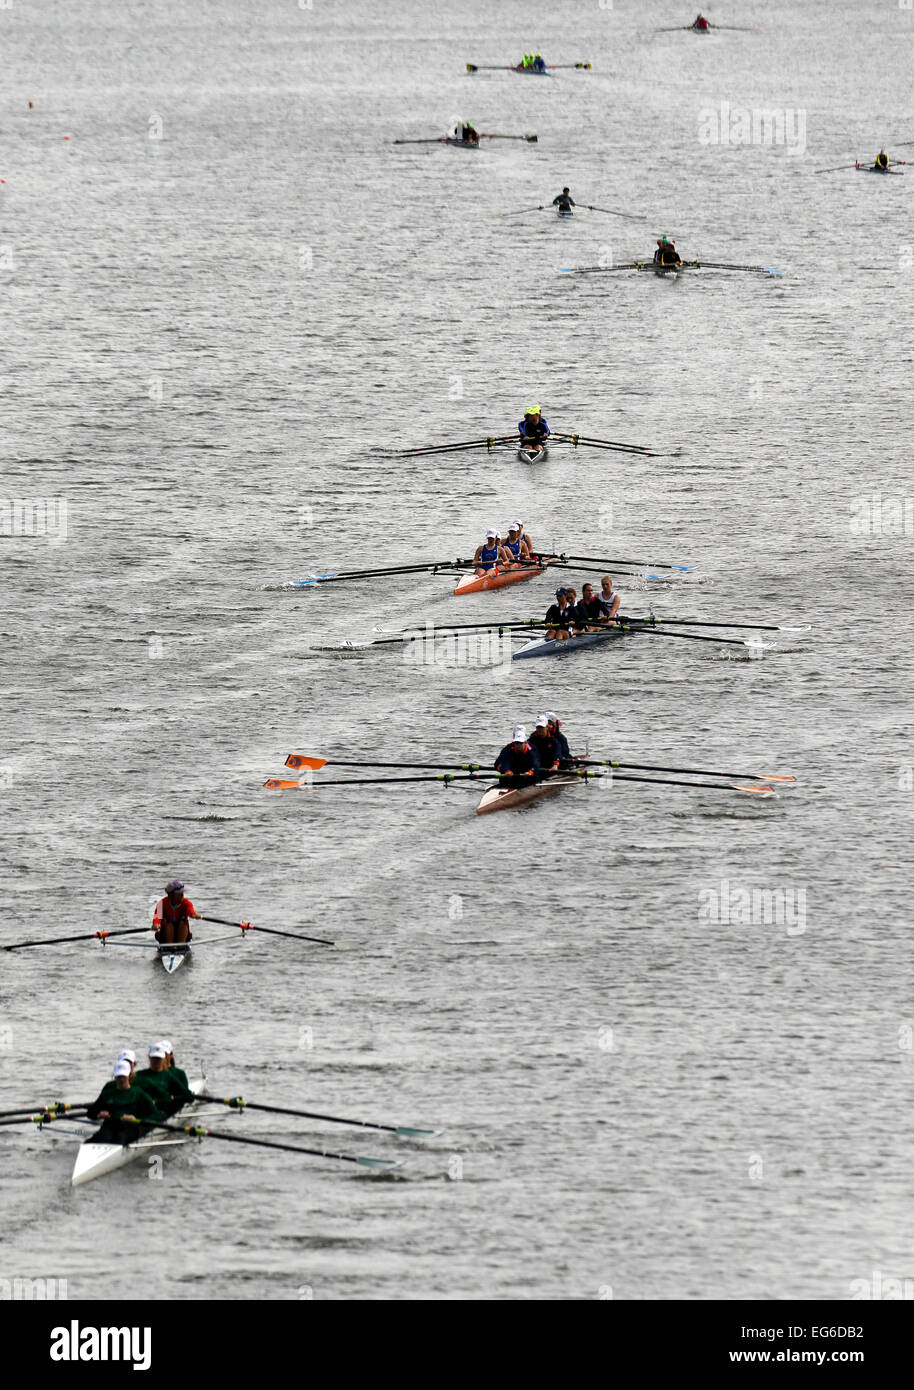 Head of the Charles Regatta - Stock Image